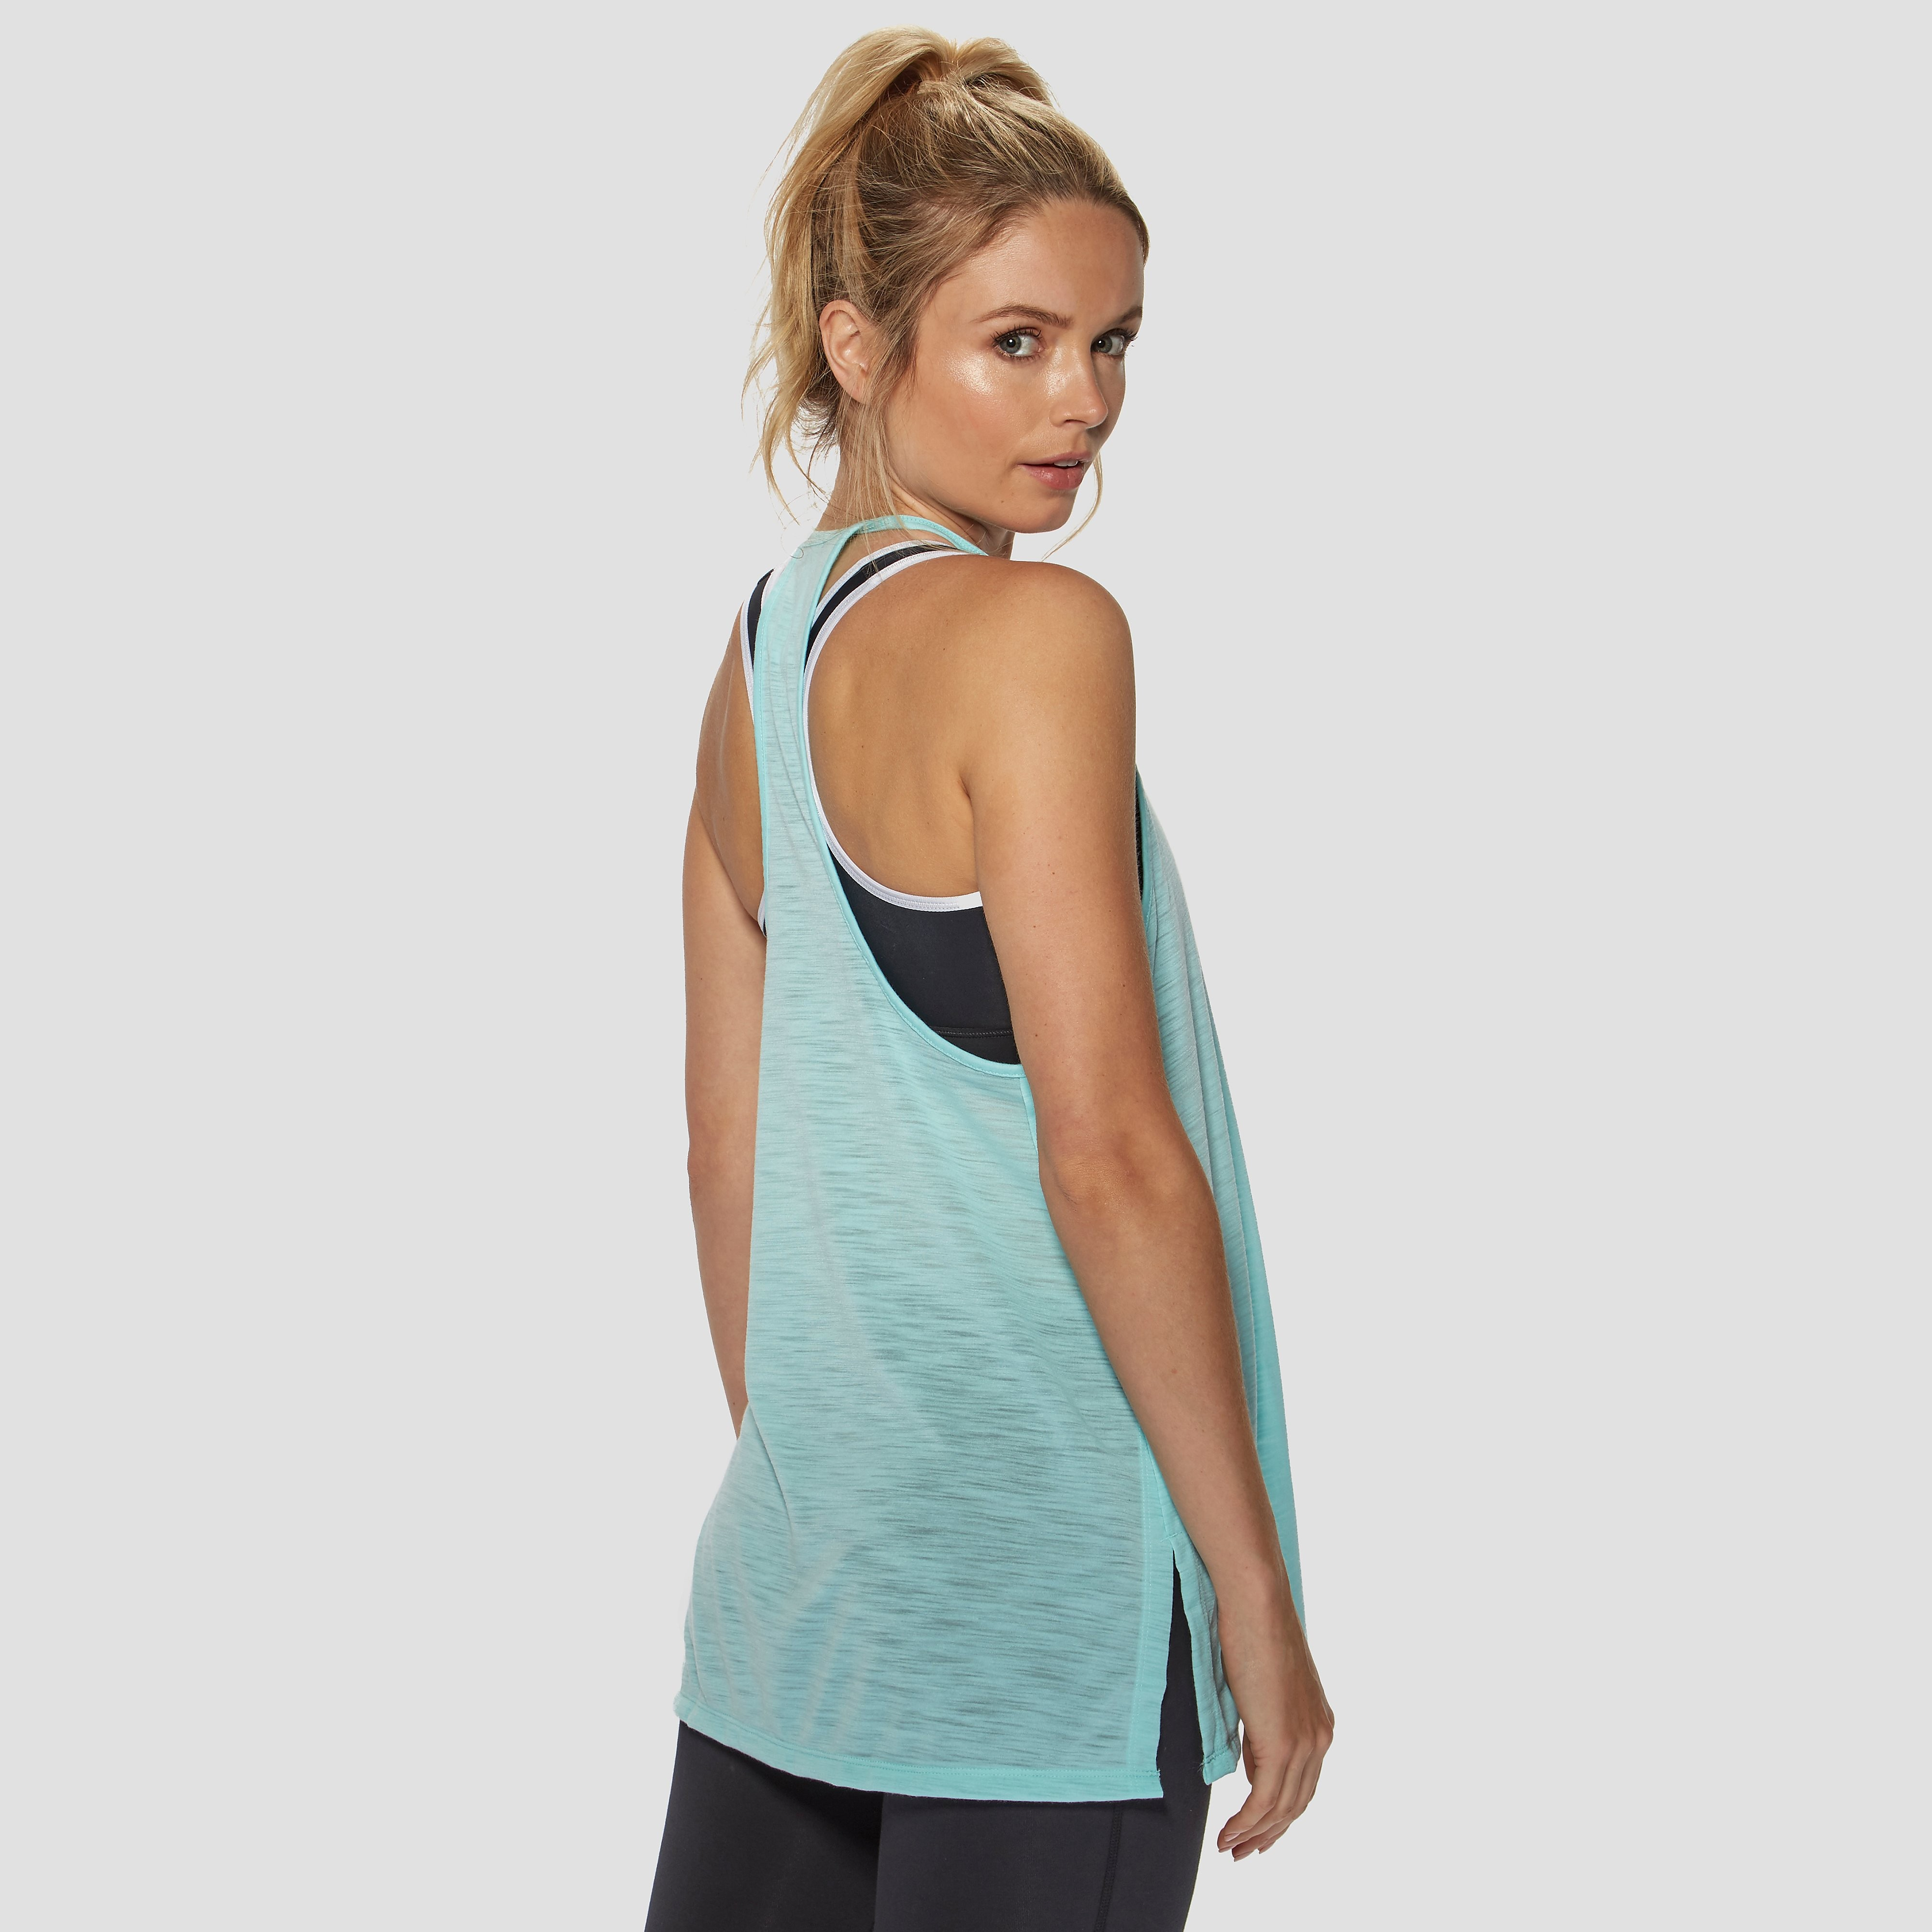 Under Armour Threadborne Women's Tank Top